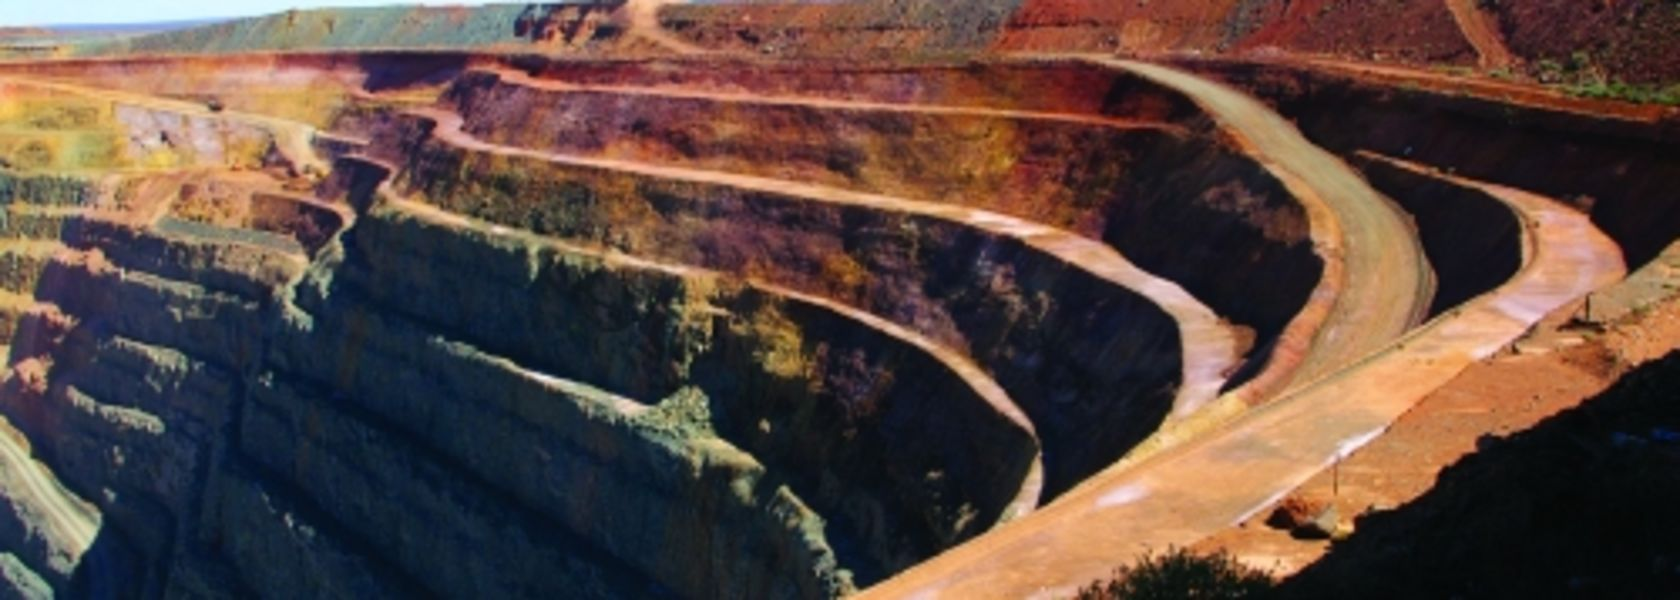 Swick bags Newmont contracts